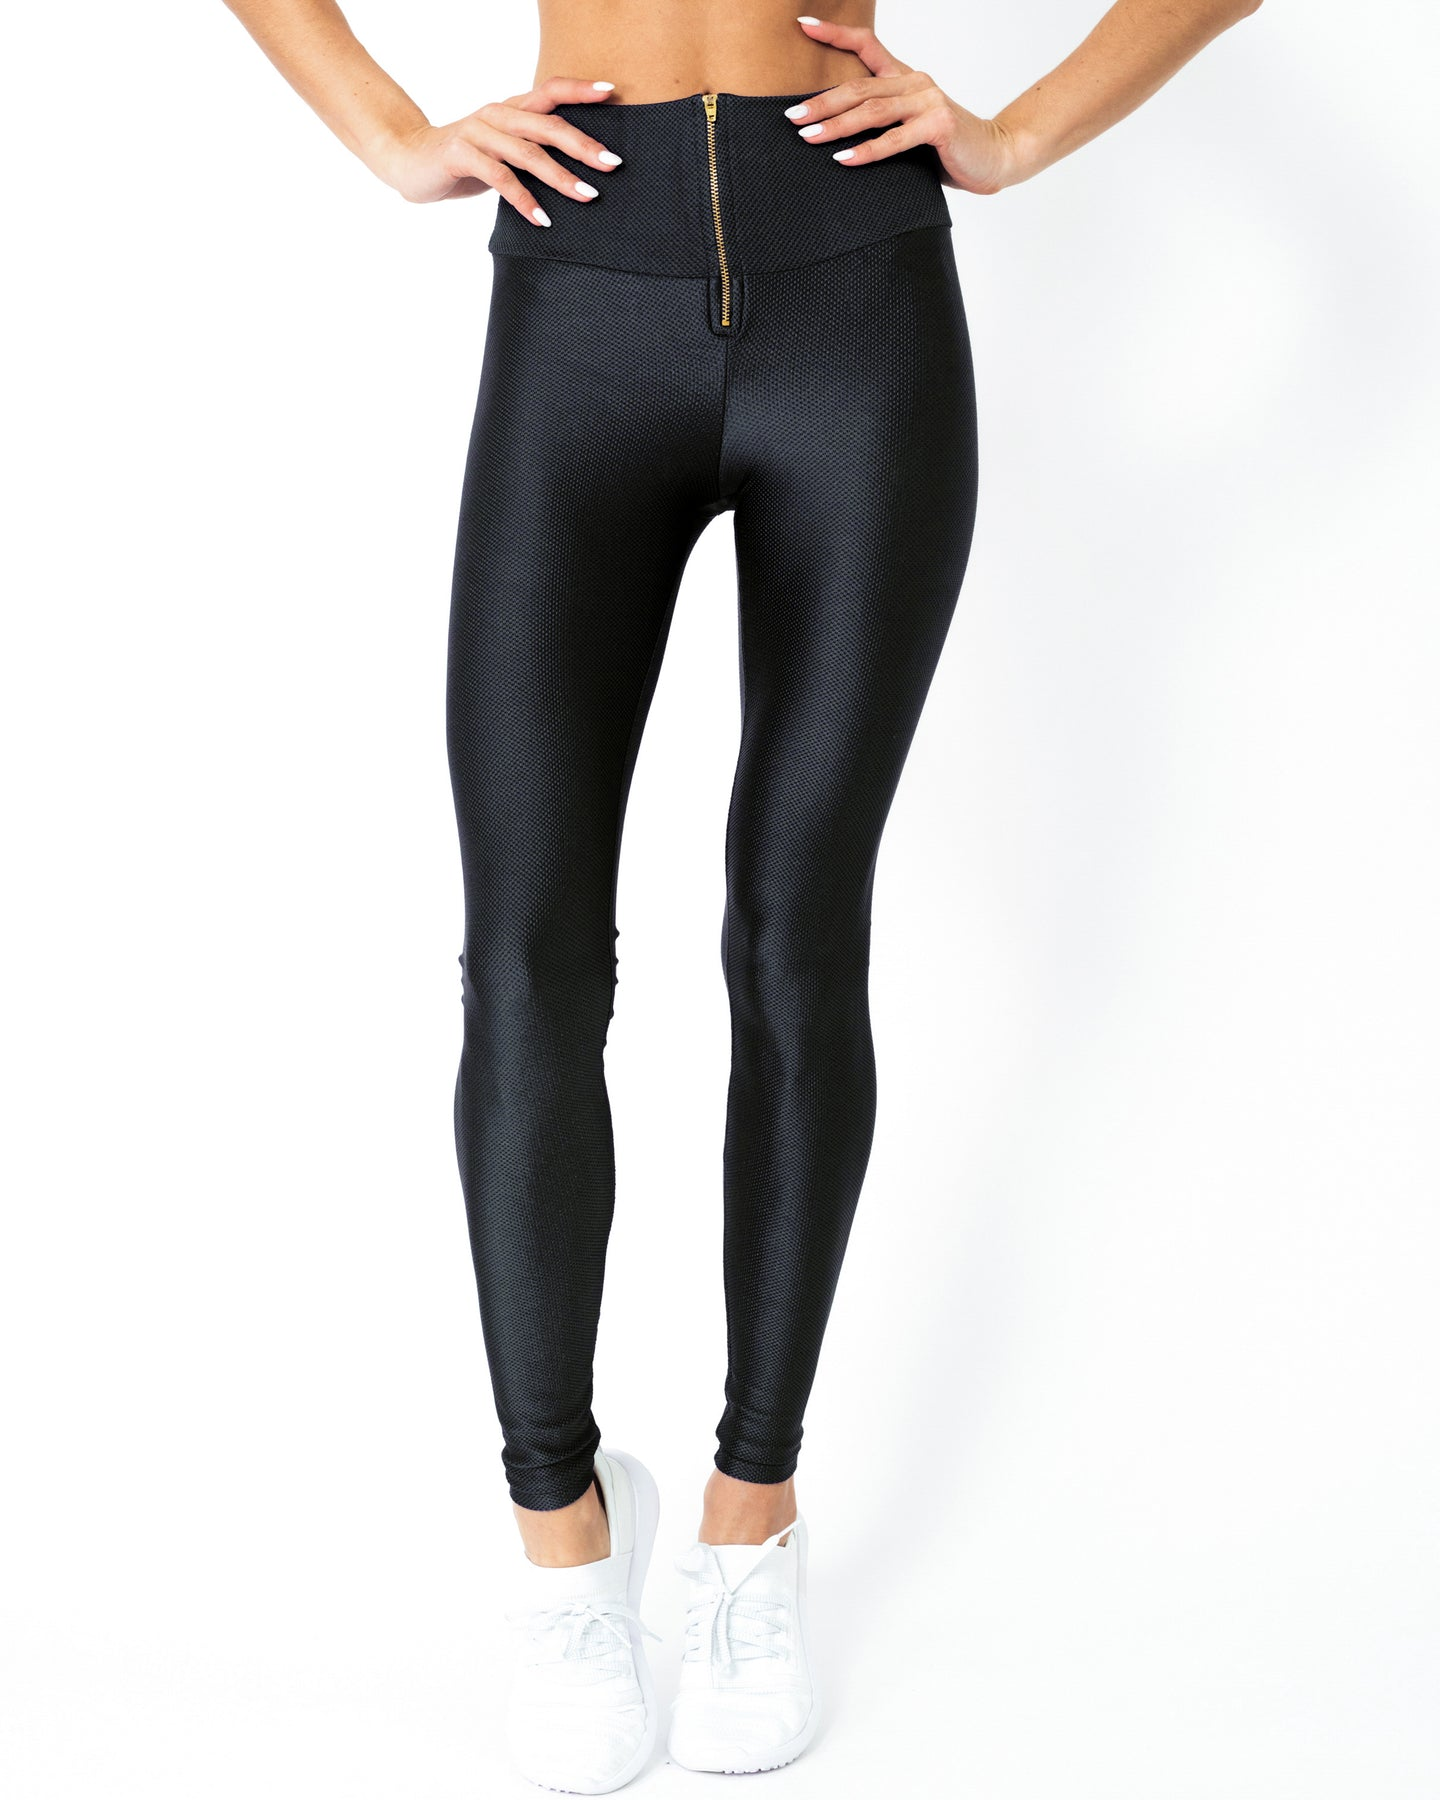 Nova Glam Body Sculpting Leggings - Black - Savoy Active